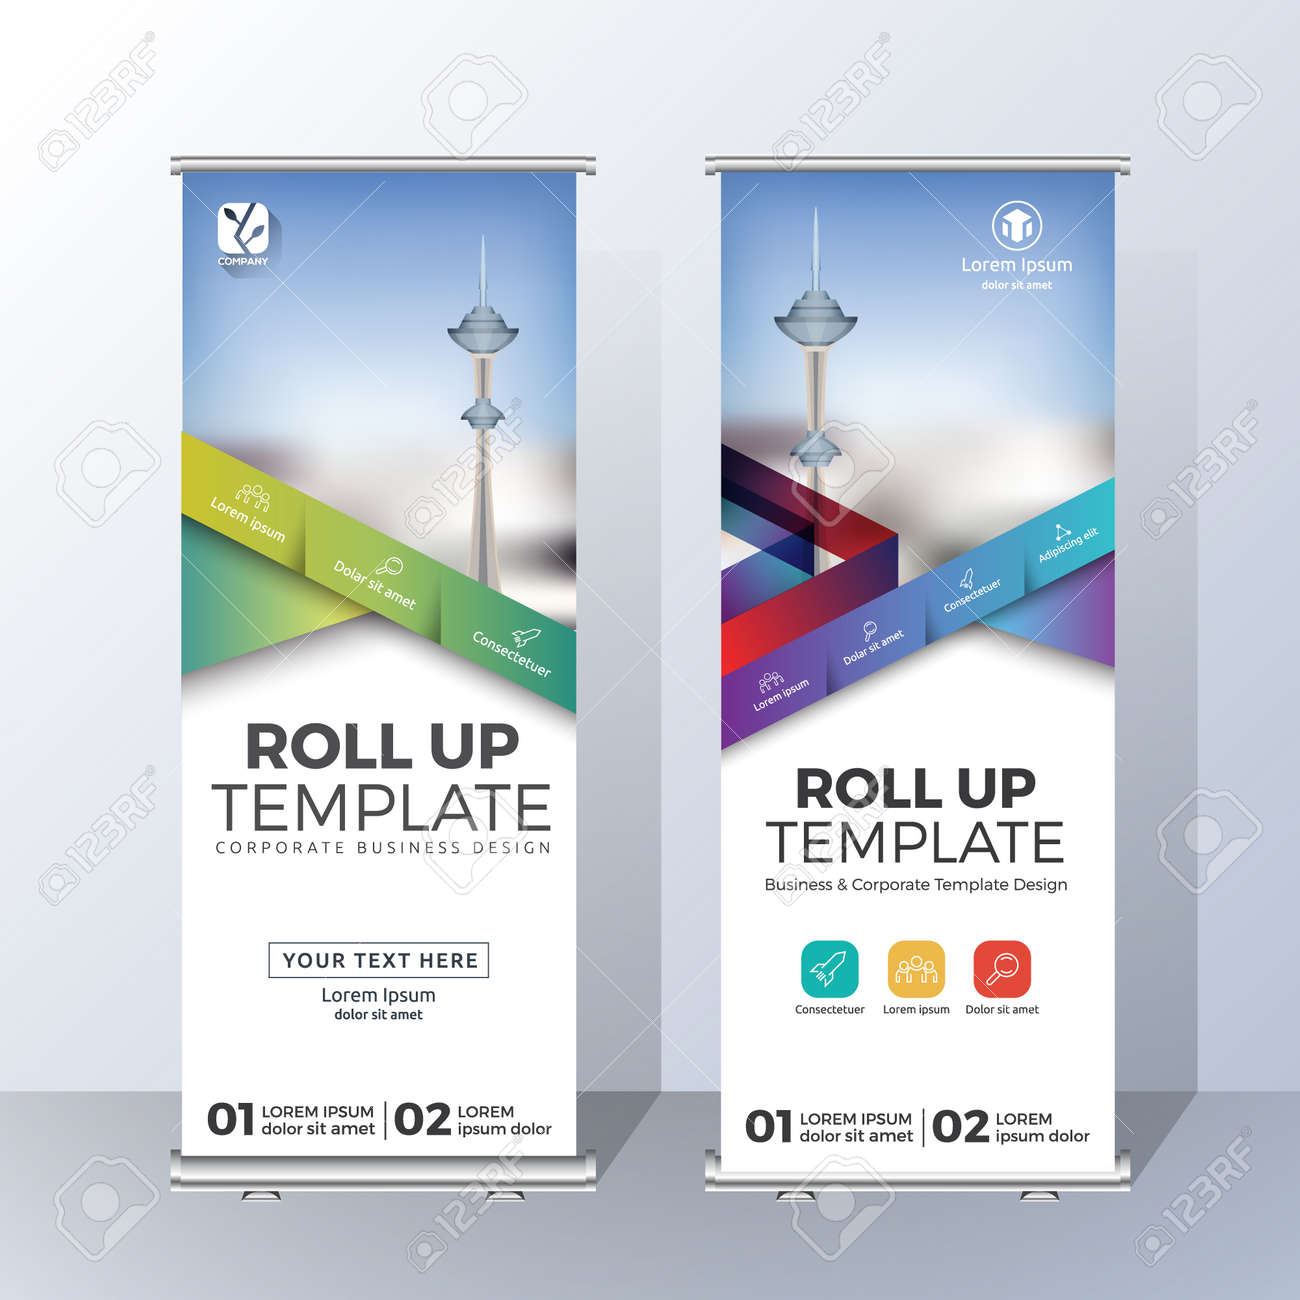 Vertical Roll Up Banner Template Design for Announce and Advertising. Vector illustration - 87984684